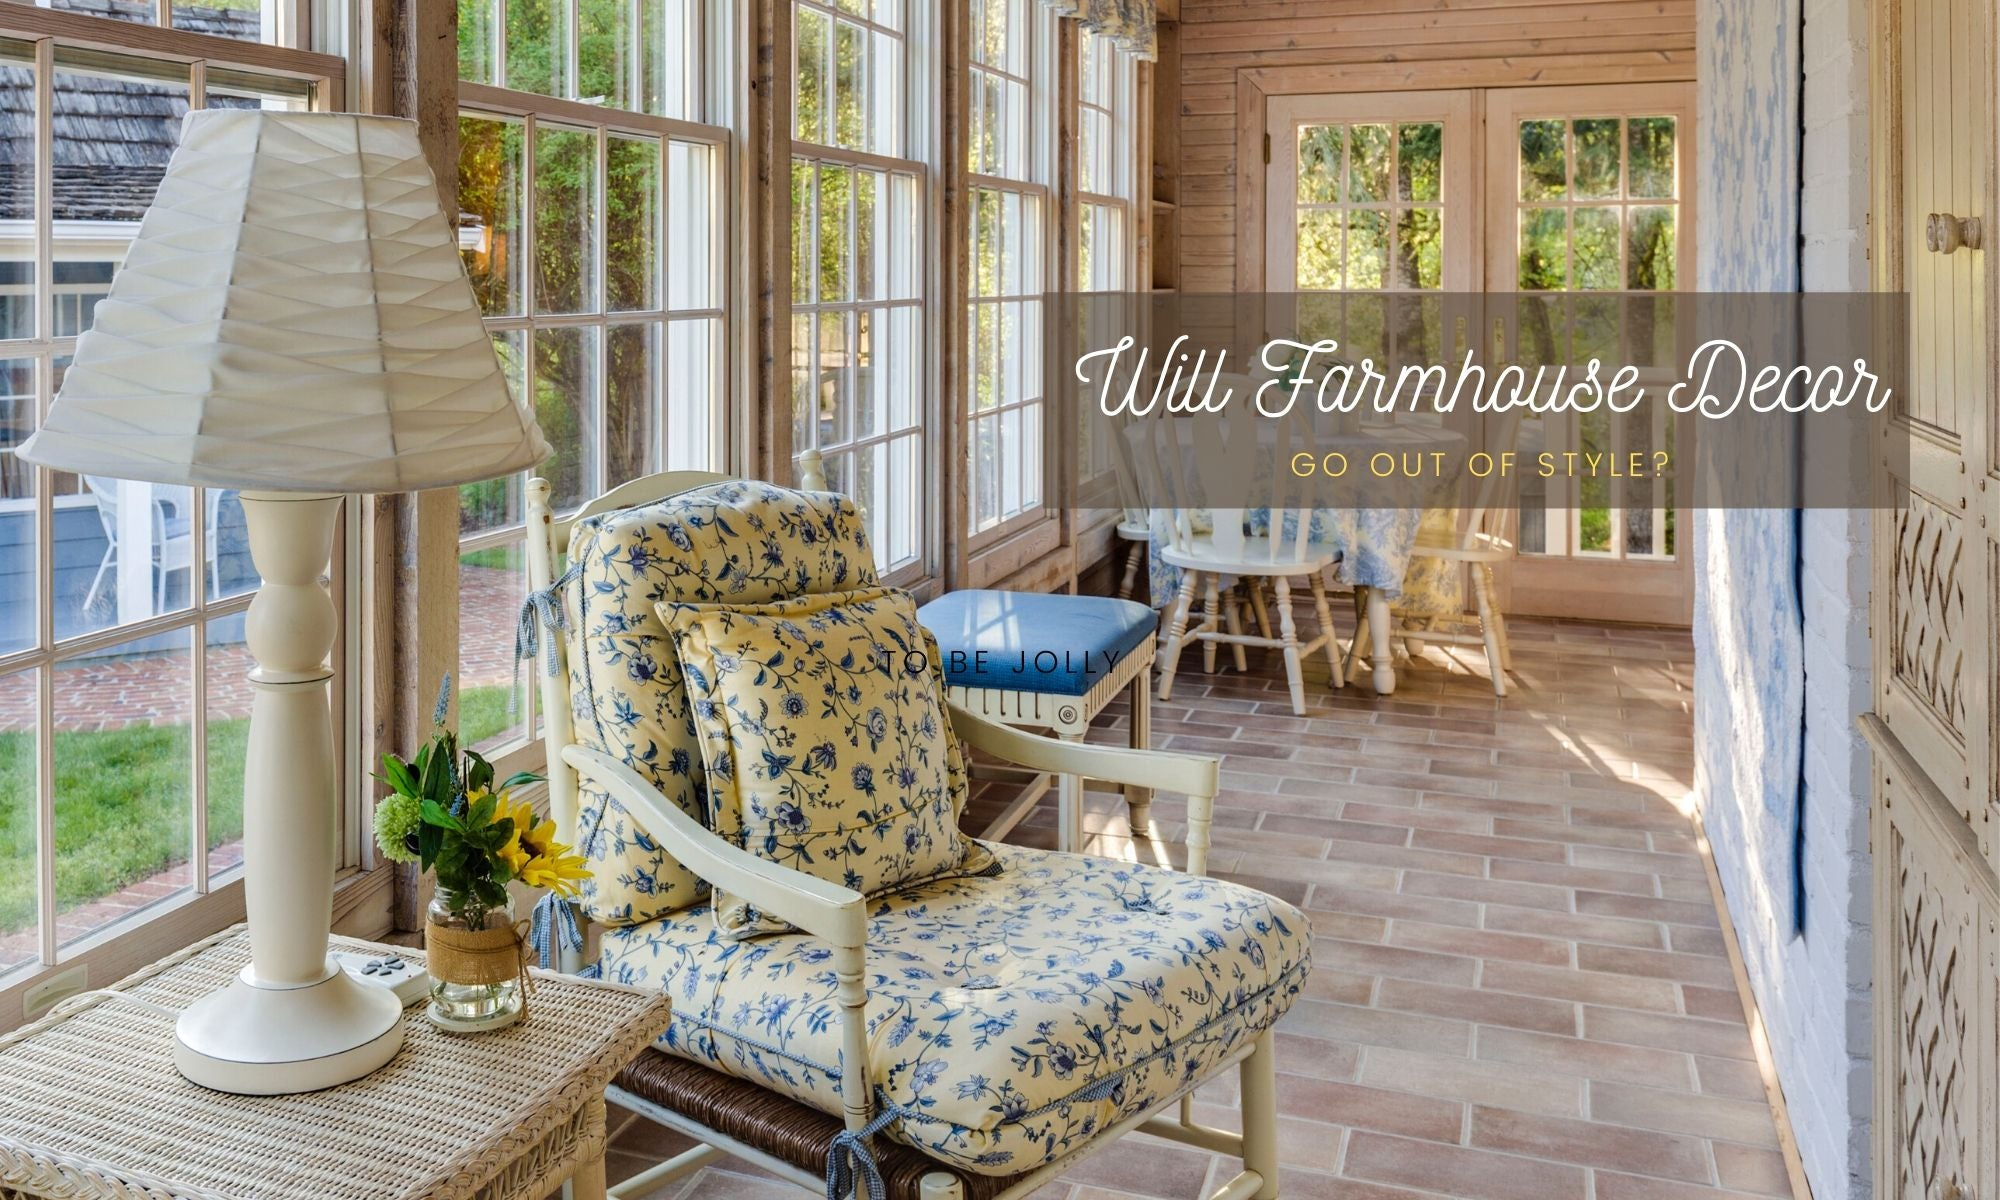 will farmhouse decor go out of style?